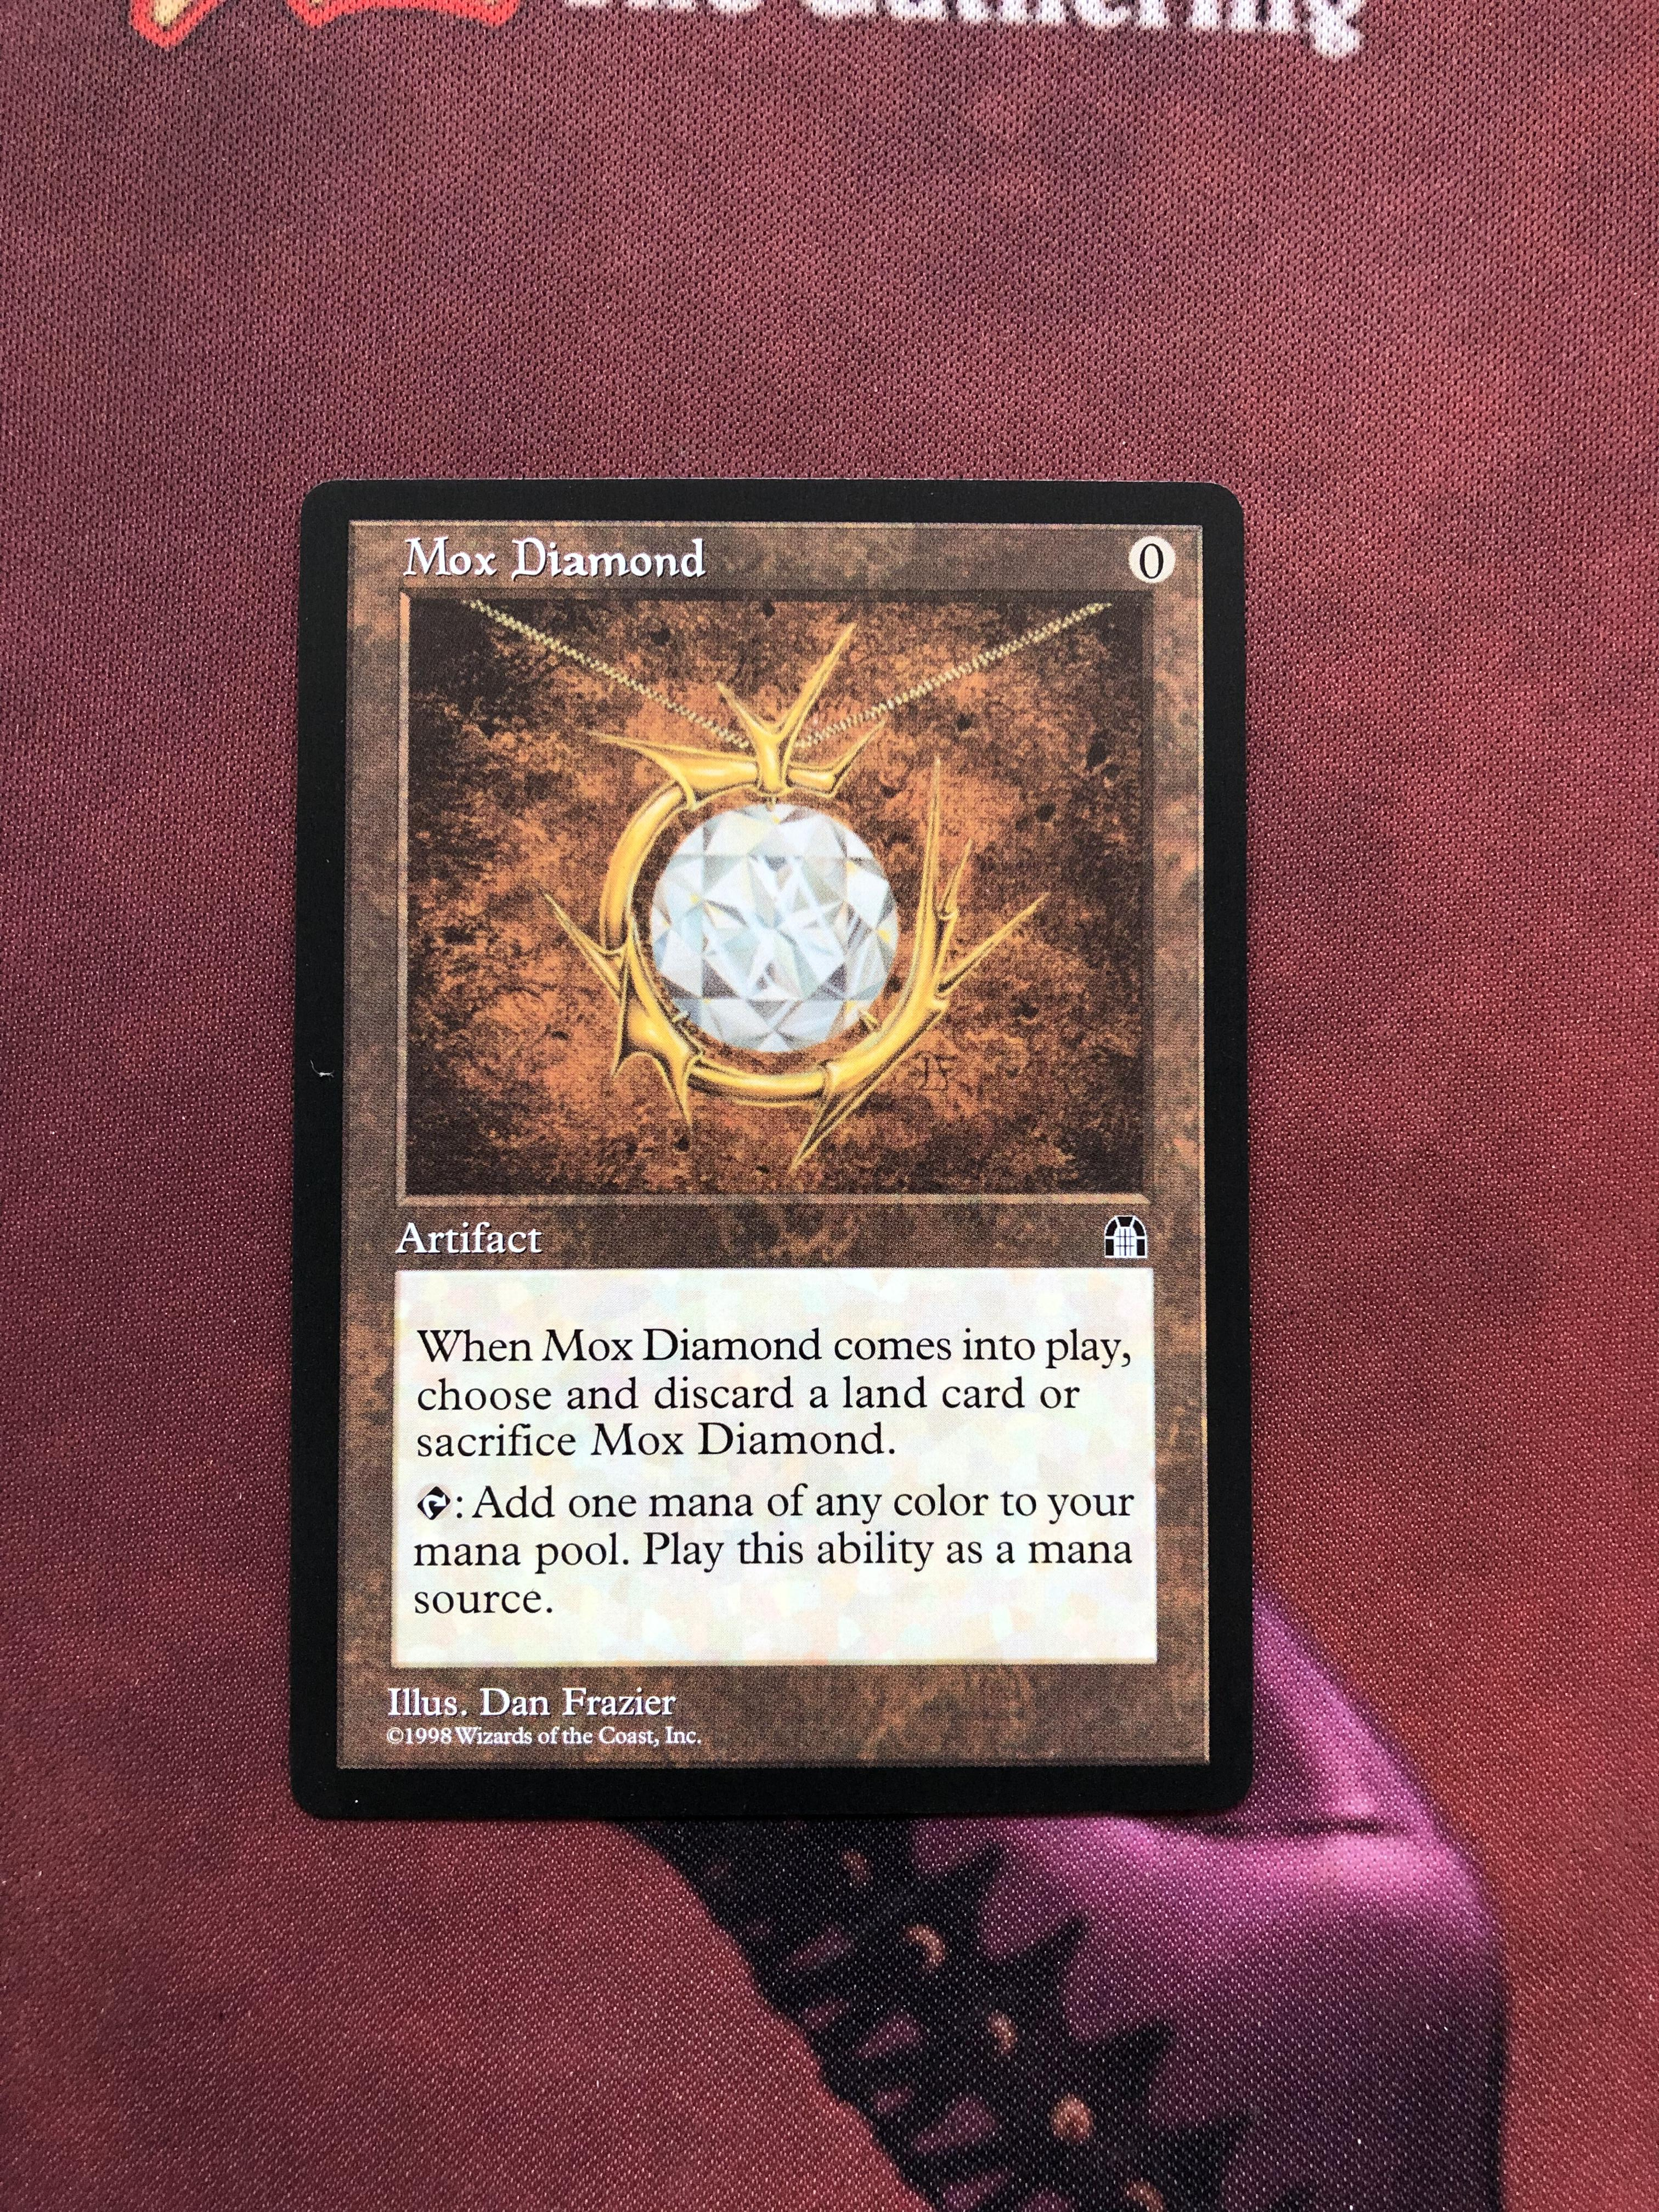 Mox Diamond Stronghold Magician ProxyKing 8.0 VIP The Proxy Cards To Gathering Every Single Mg Card.